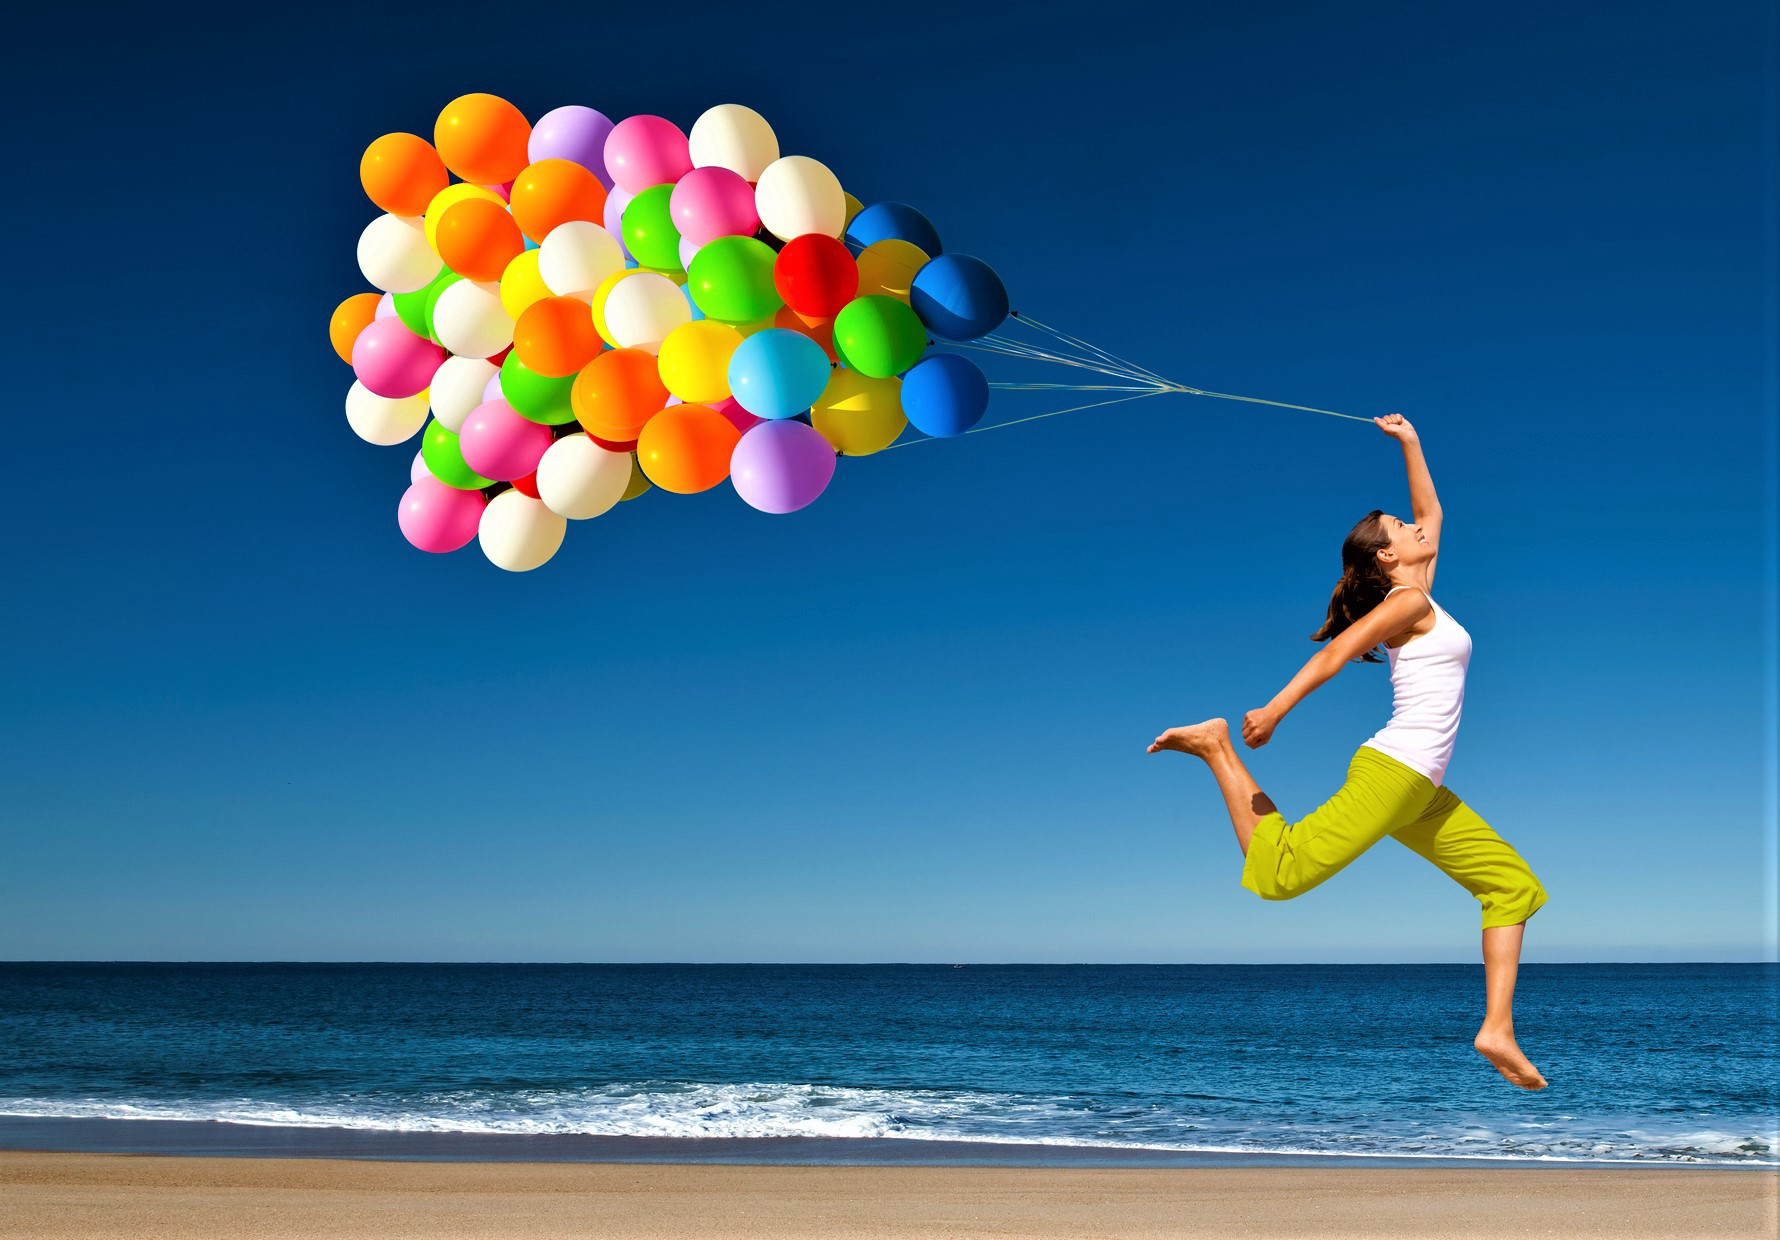 Woman with dark hair wearing sleeveless white shirt and bright green pants leaping in air hold large group of colorful balloons